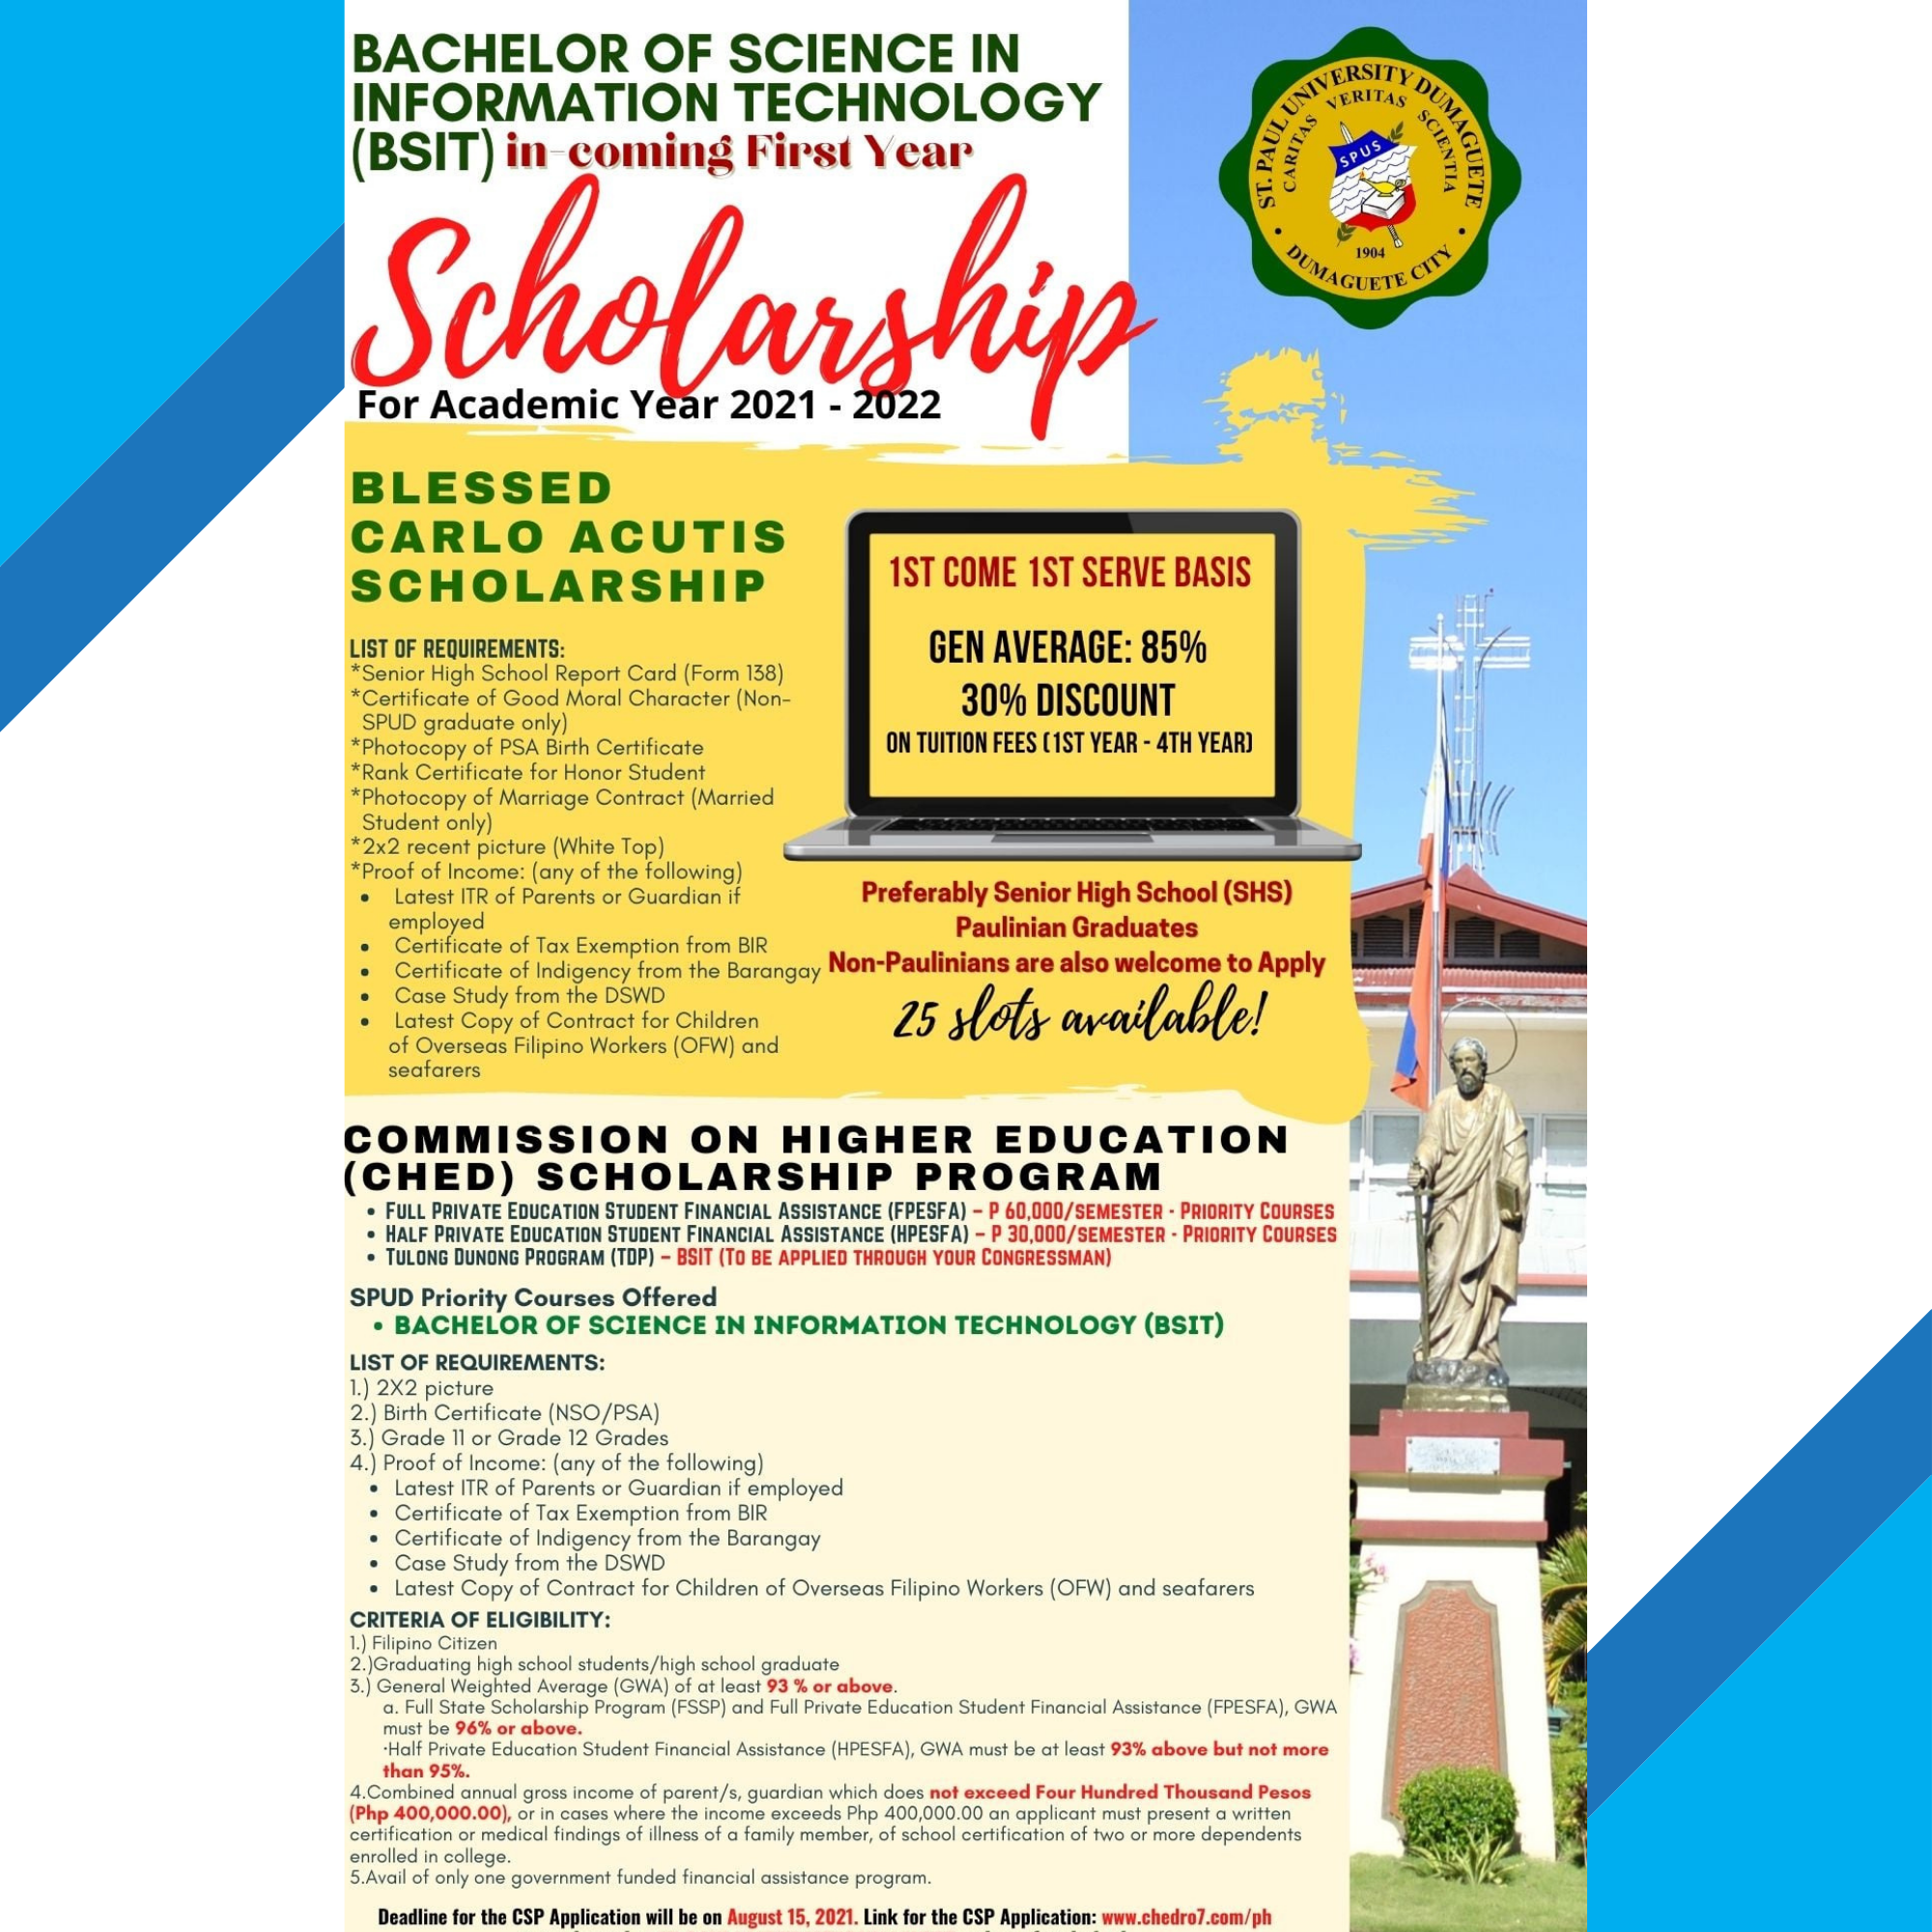 Enroll now be a Paulinian IT Professional (BLESSED CARLO ACUTIS SCHOLARSHIP)